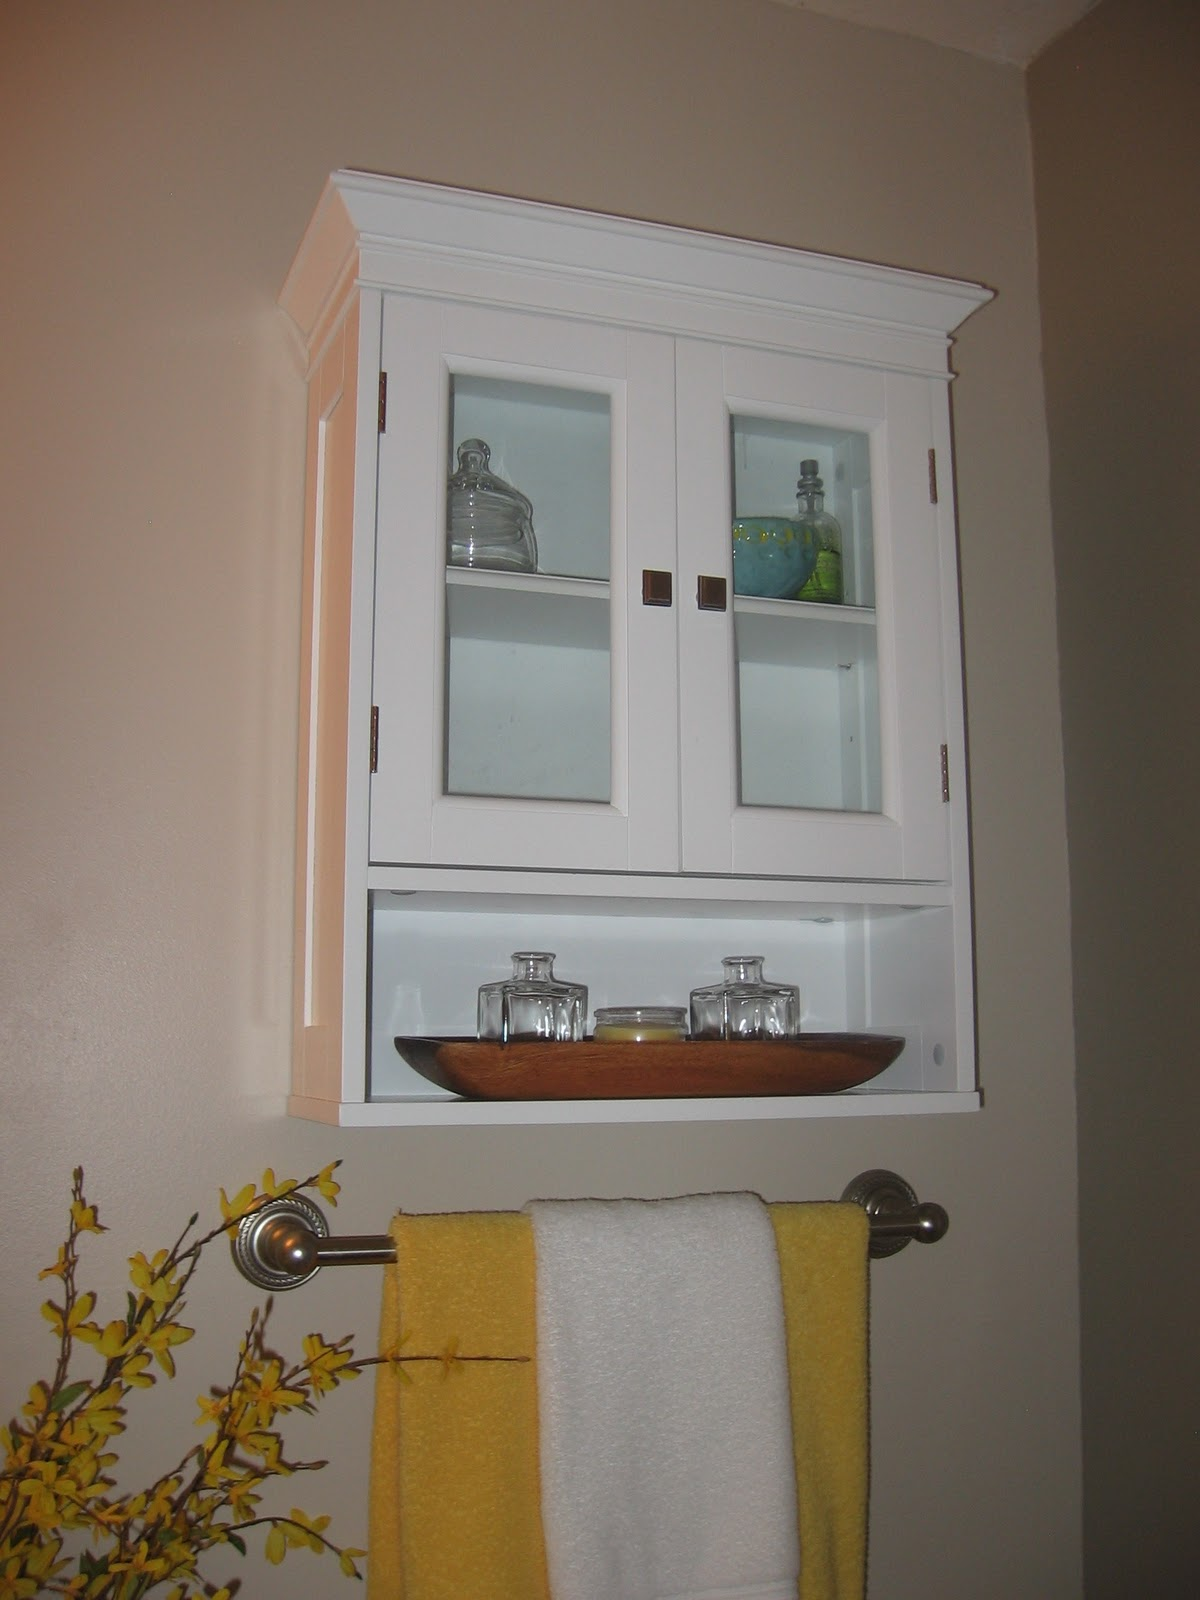 The Delectable Home: 31 Days {25}: Bathroom Wall Cabinet